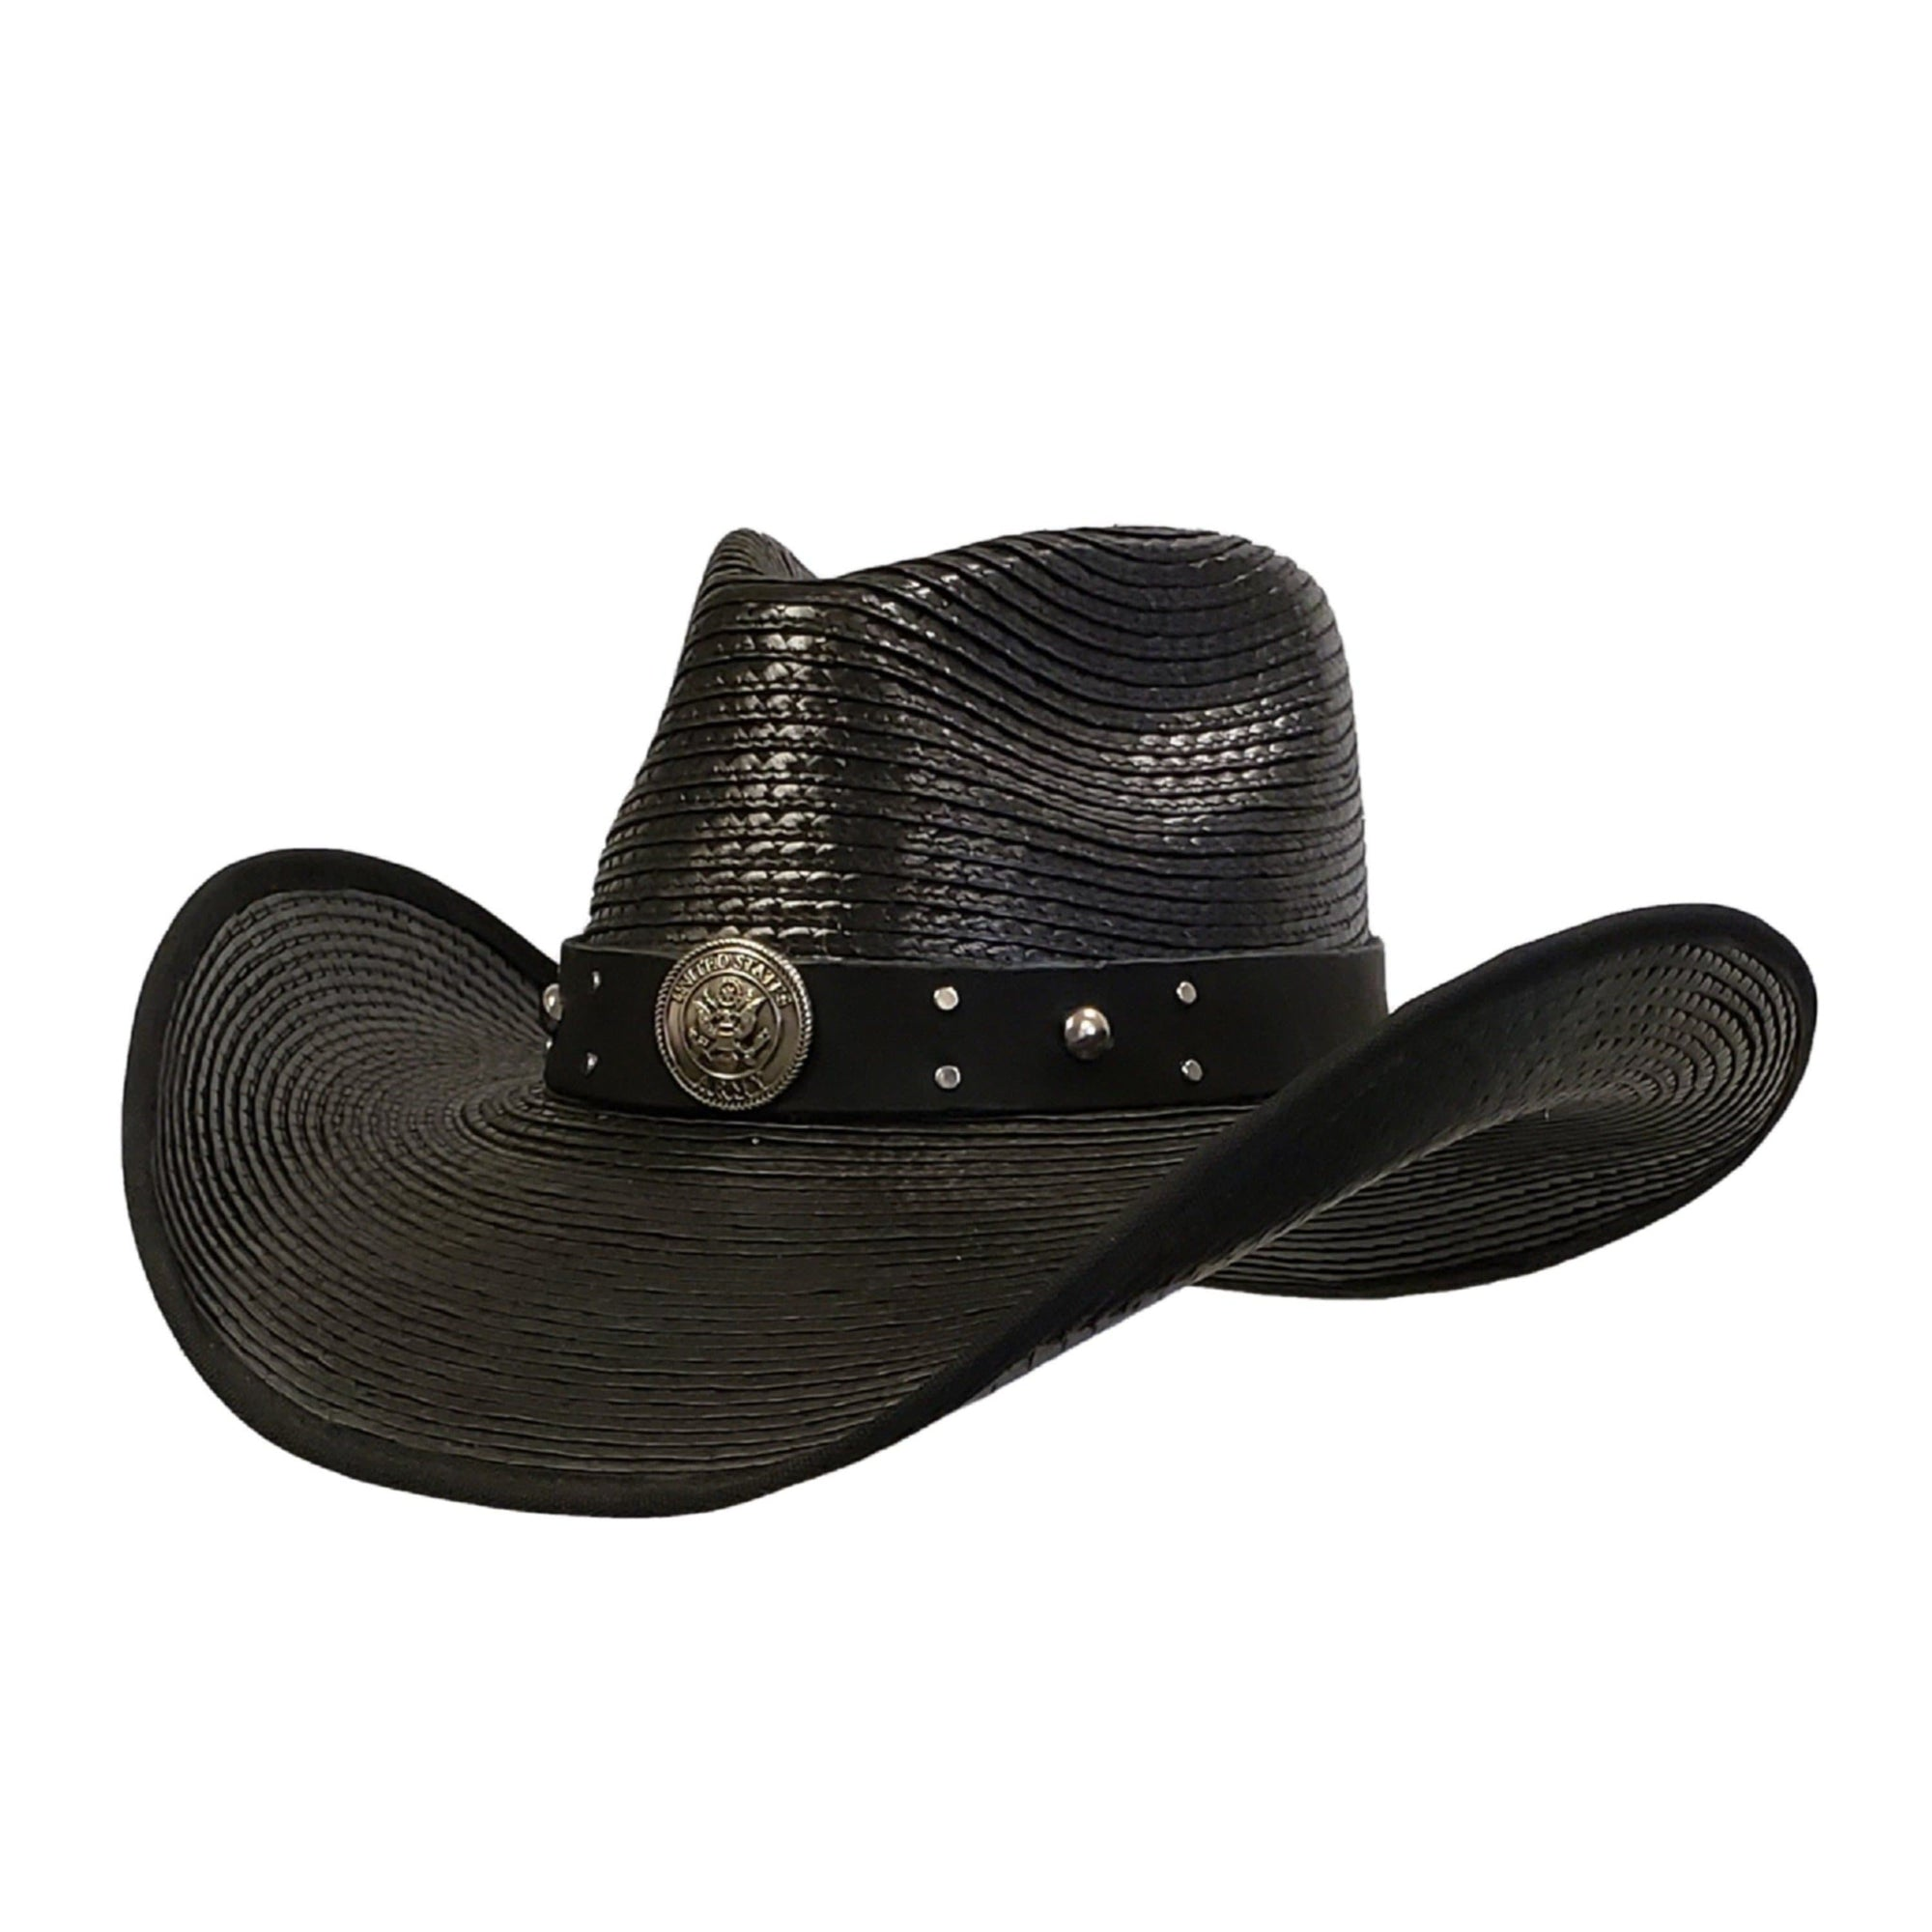 Waterproof cowboy hat honoring army heroes